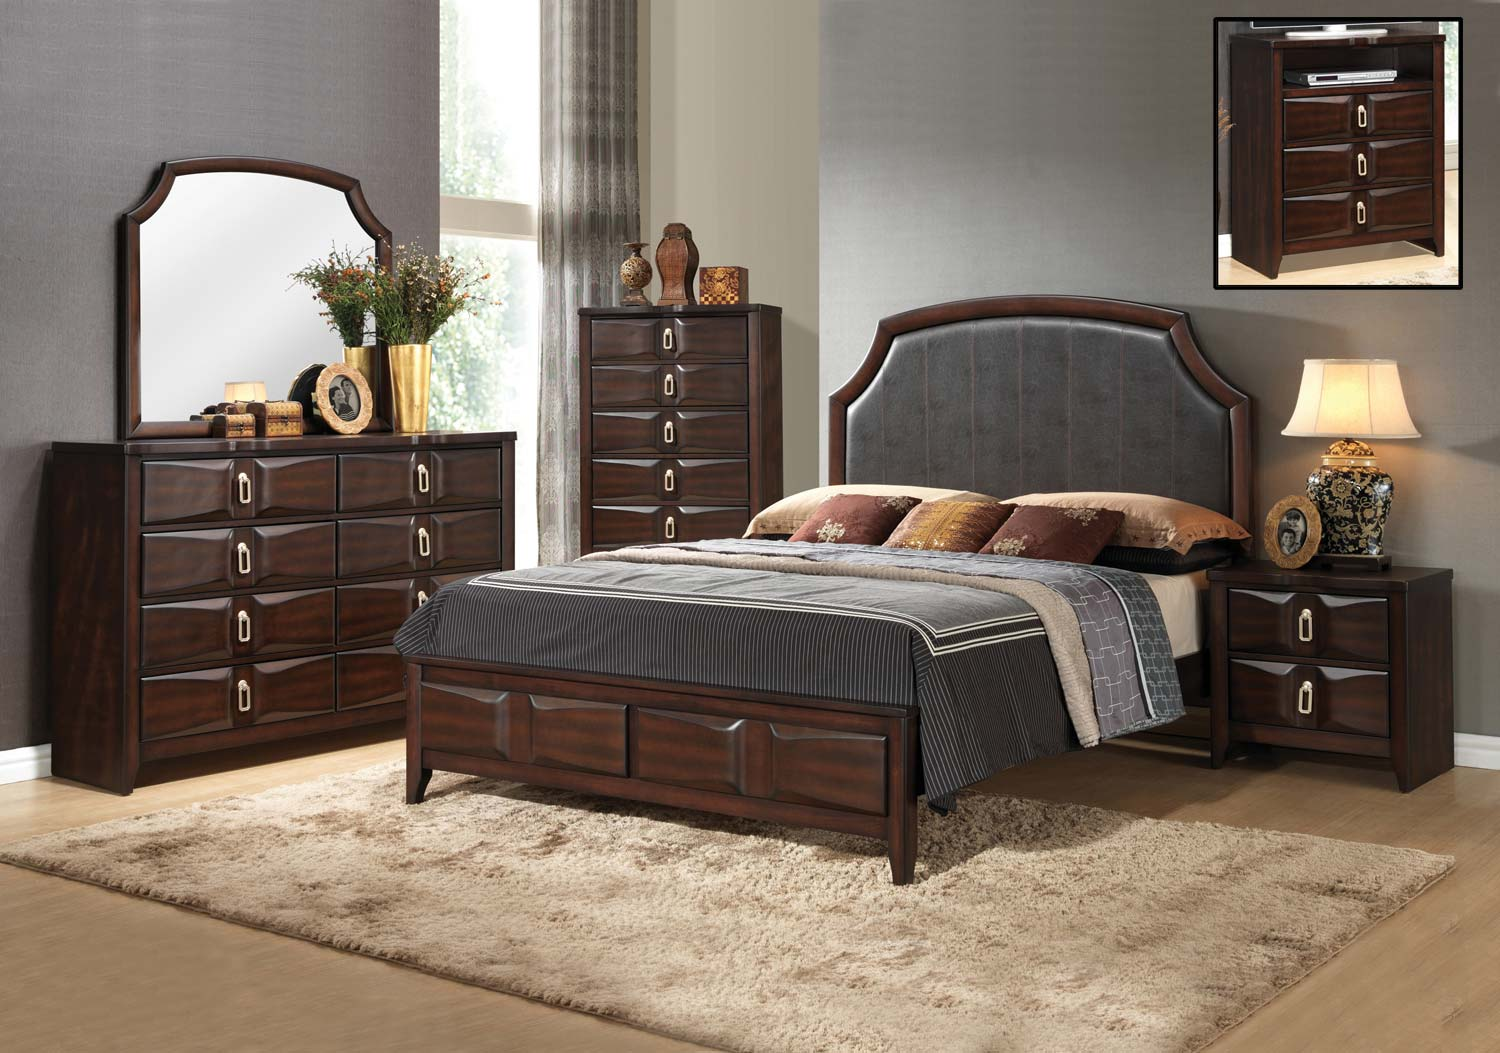 Coaster Casper Bedroom Set - Oak